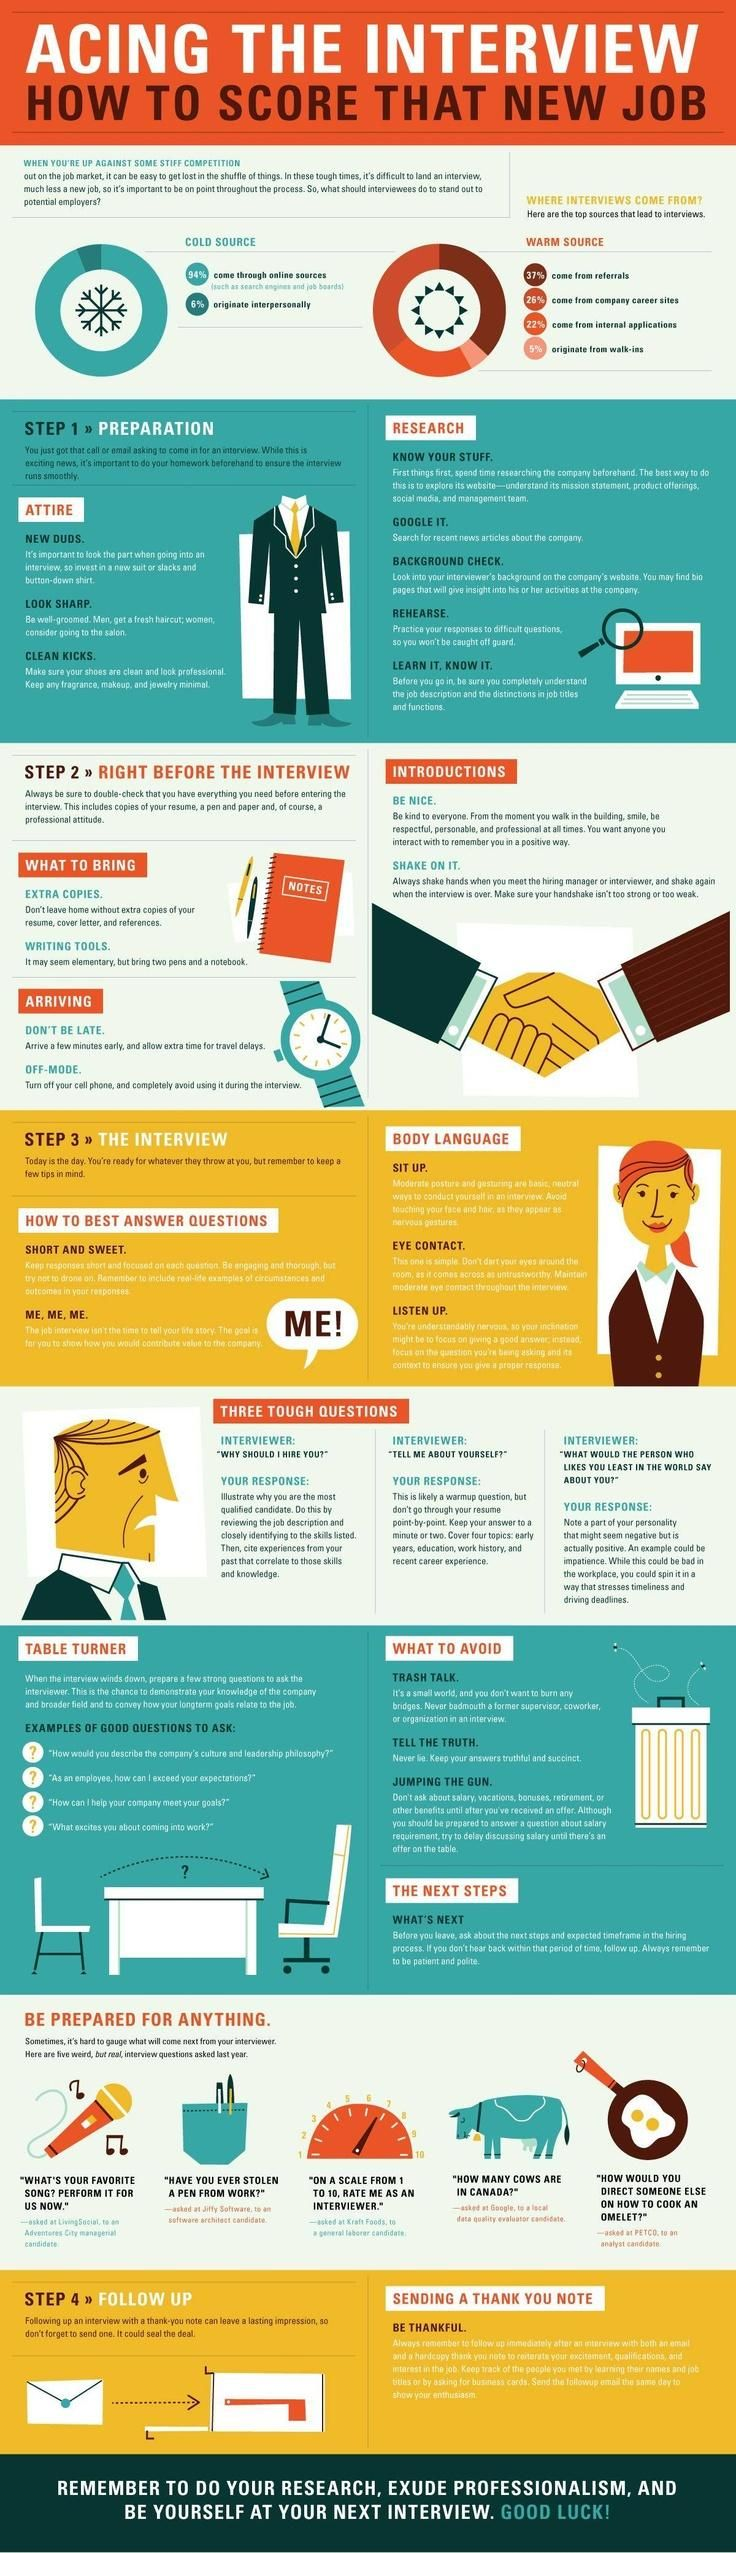 top #interview #tips